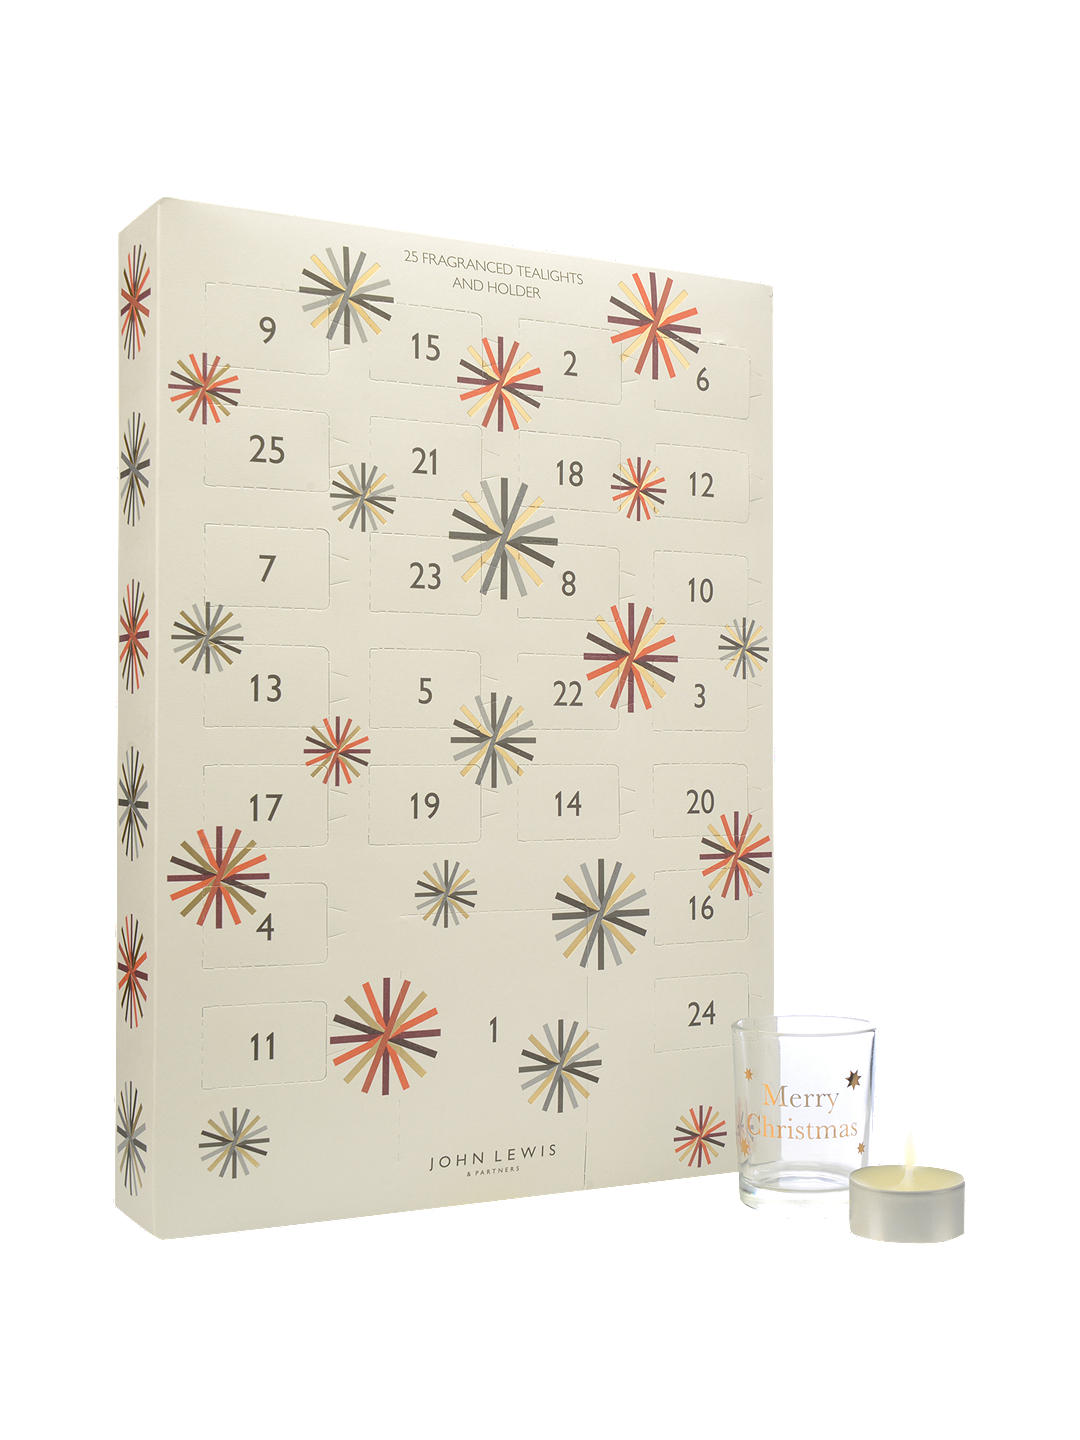 John Lewis & Partners Christmas Advent Tealight - Containing 24 seasonally scented candles, this advent calendar from John Lewis & Partners will keep your home smelling divine throughout the countdown to Christmas.£25.00